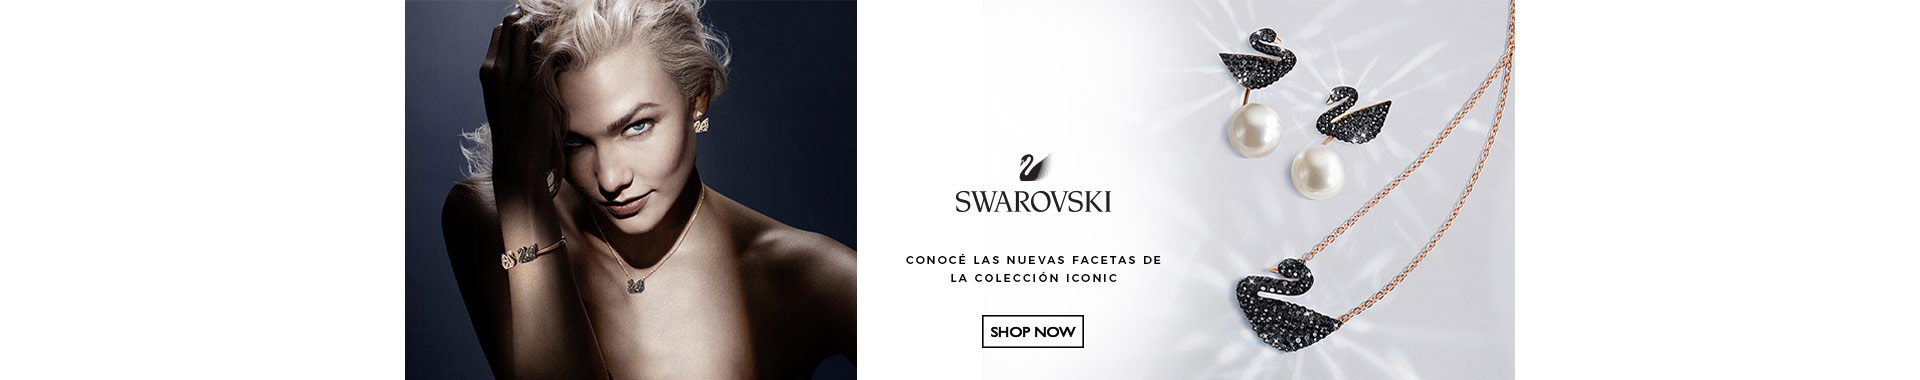 Swarovski Iconic Collection